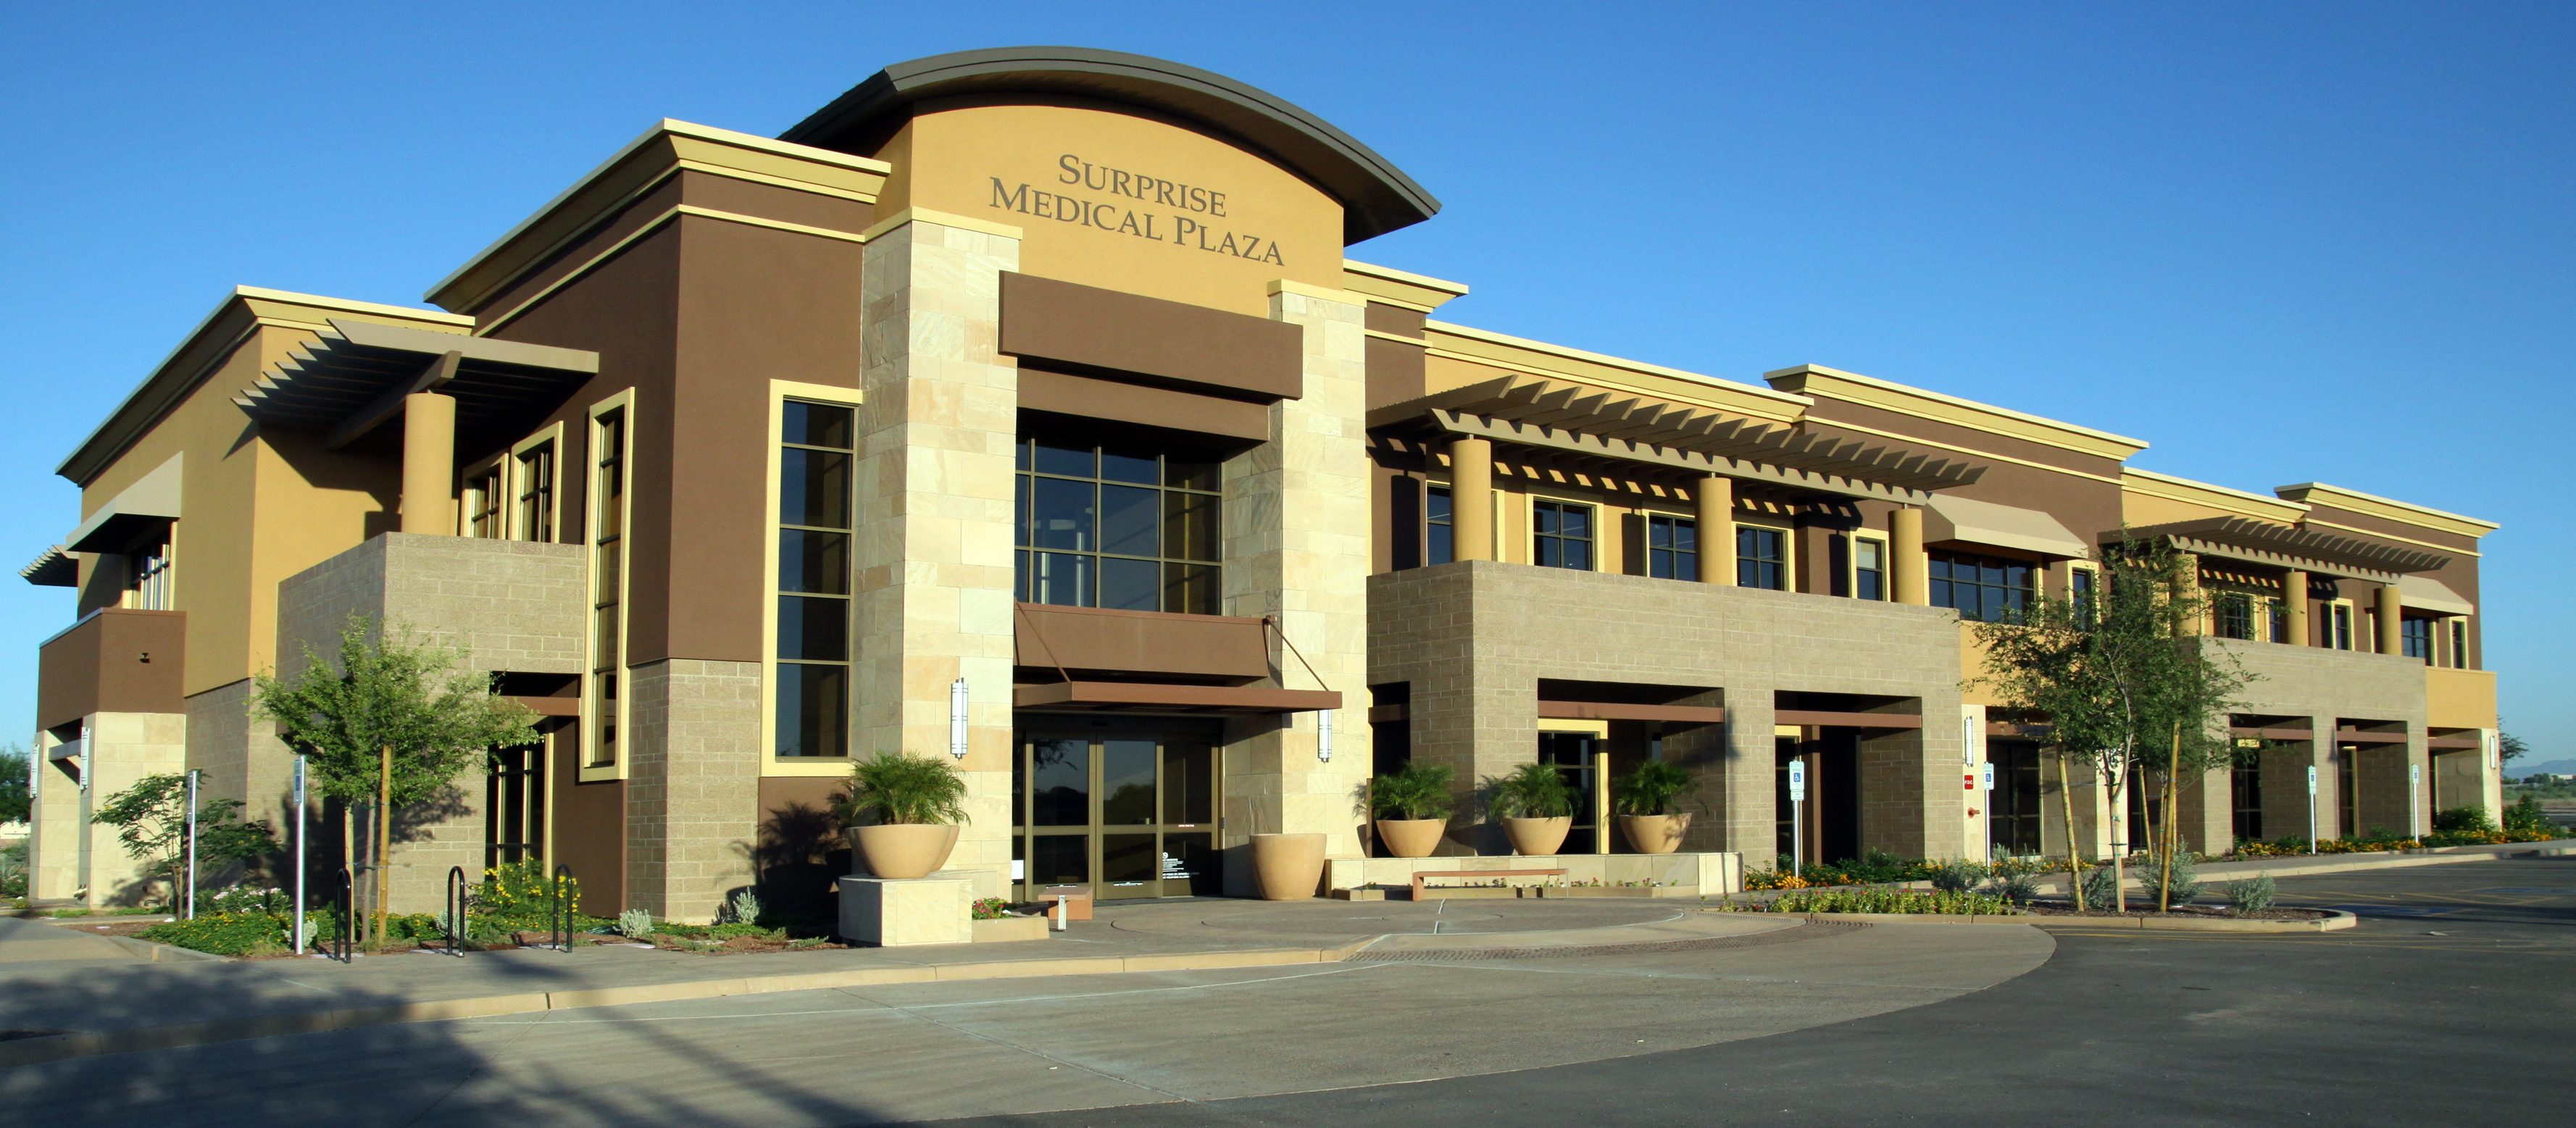 Surprise Medical Plaza